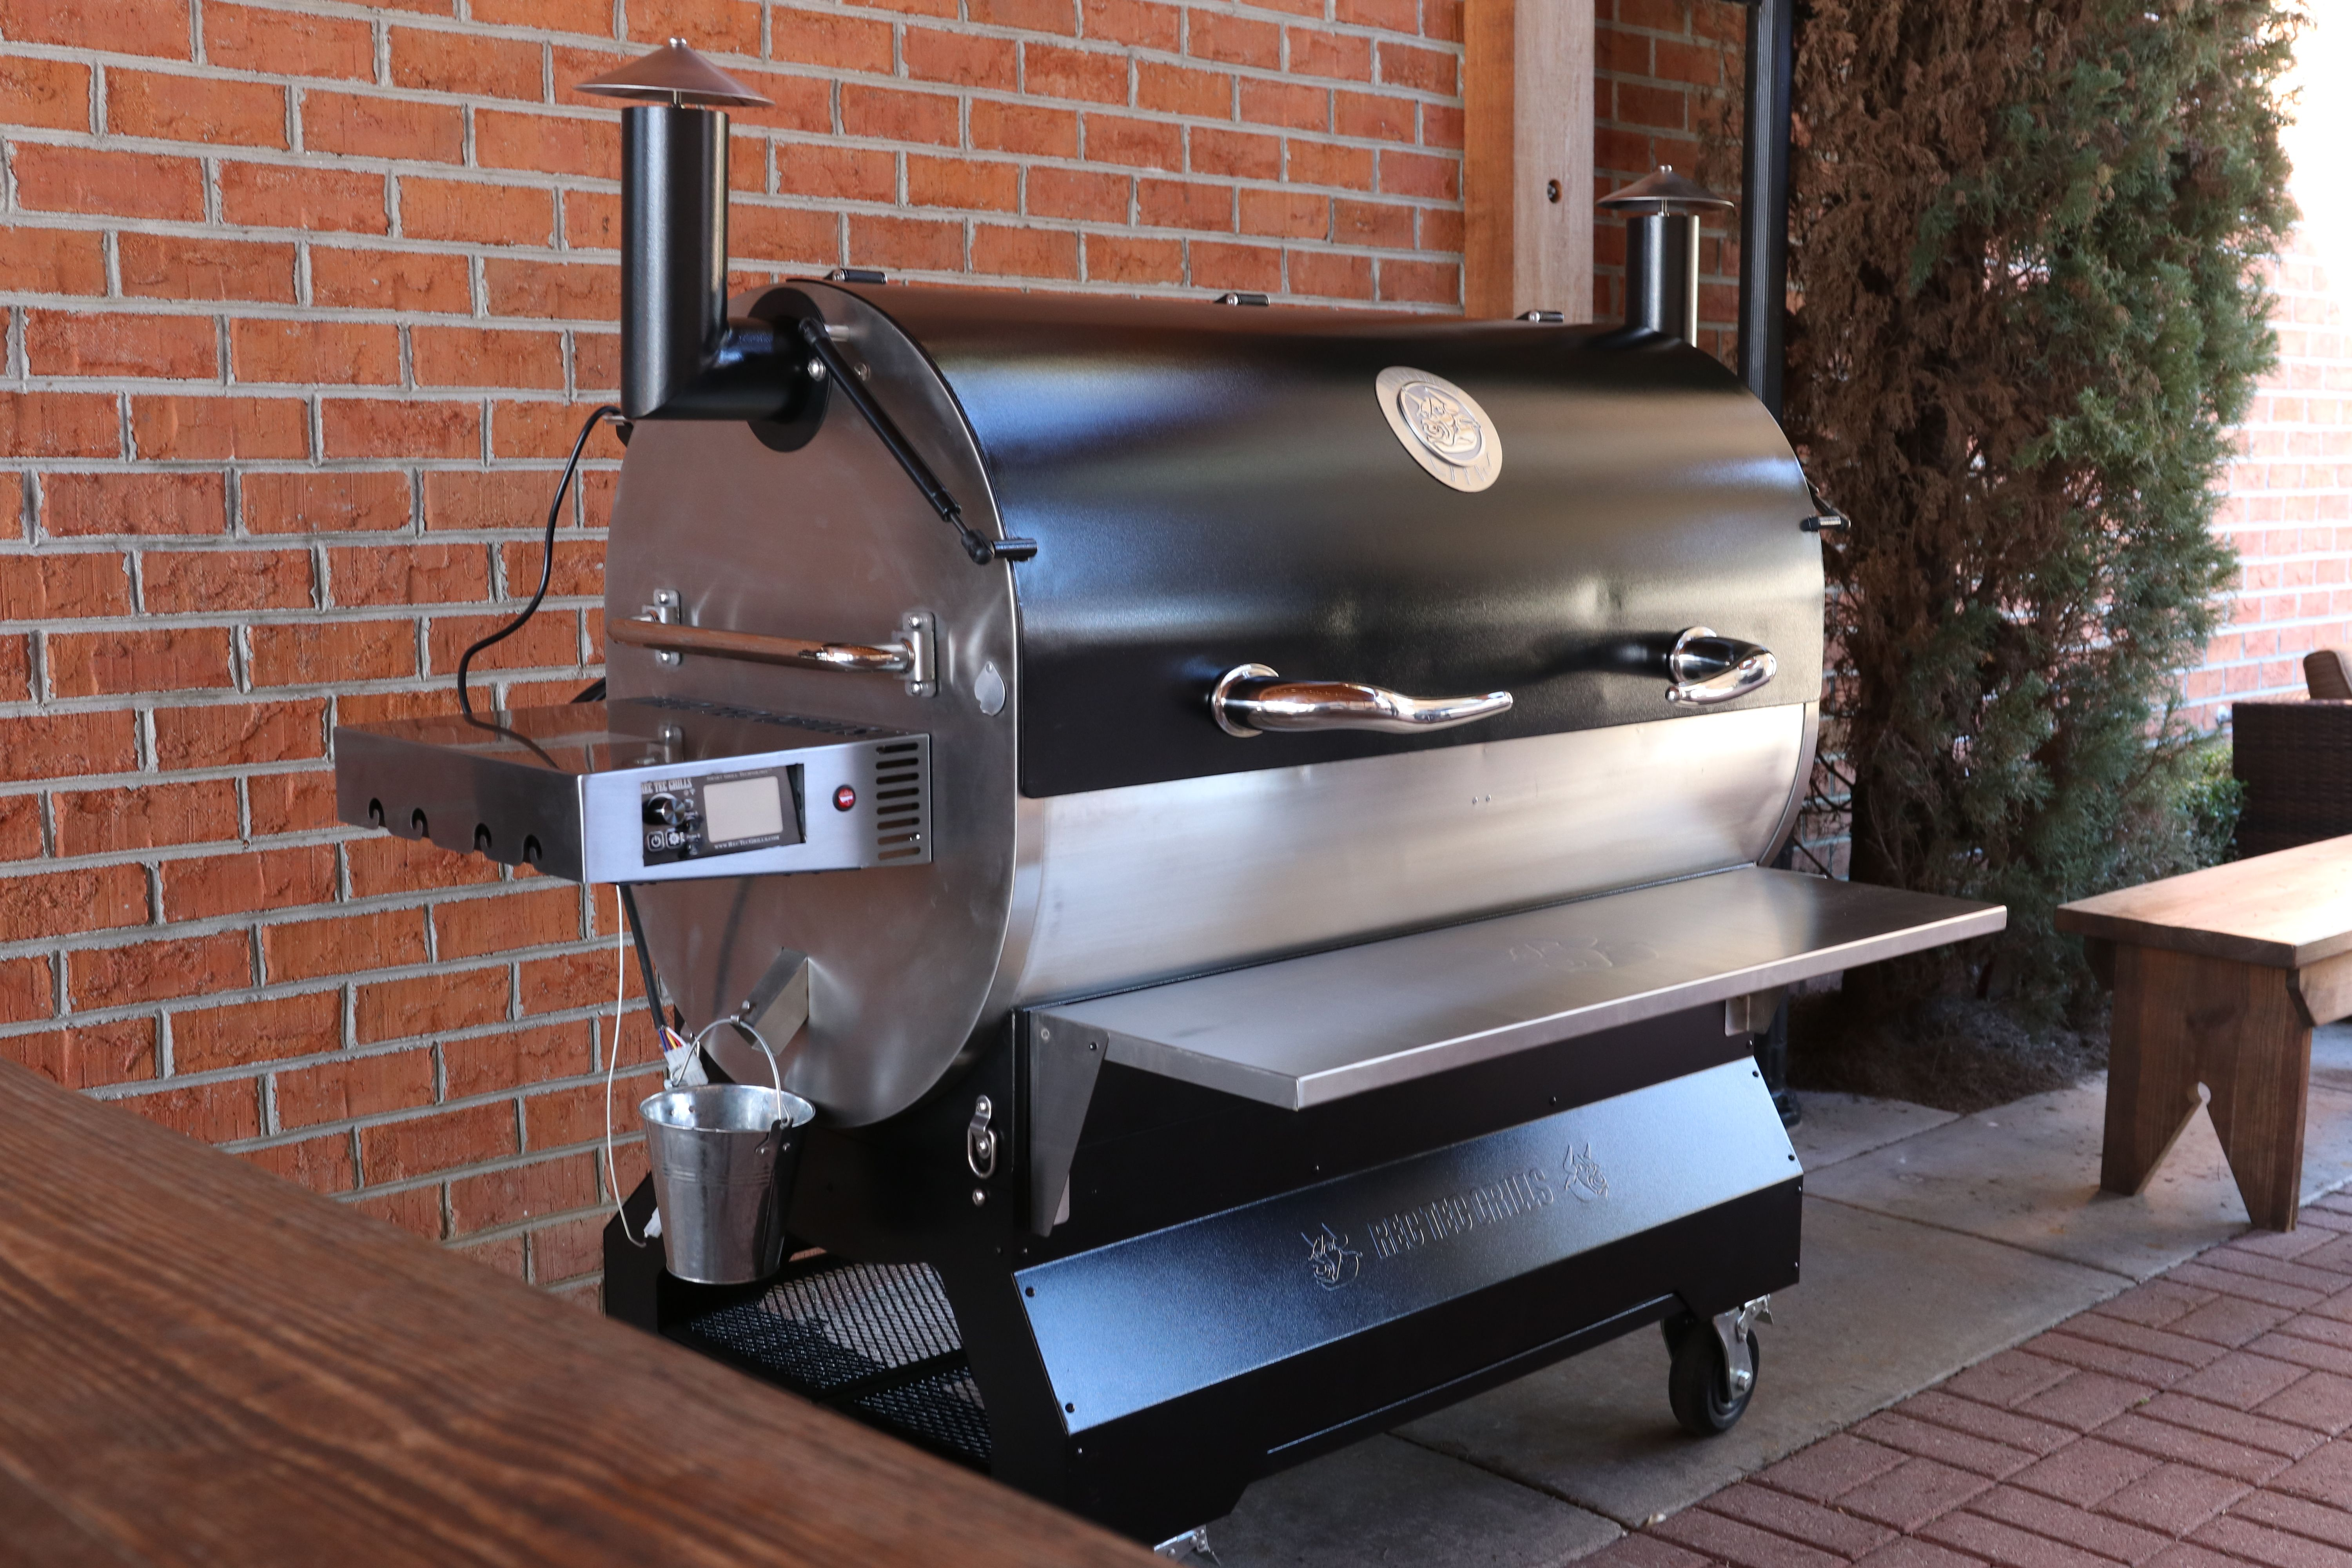 Pin By Recteq On Rt 2500 Bfg Fire Pots Wood Pellet Grills Stainless Steel Rod